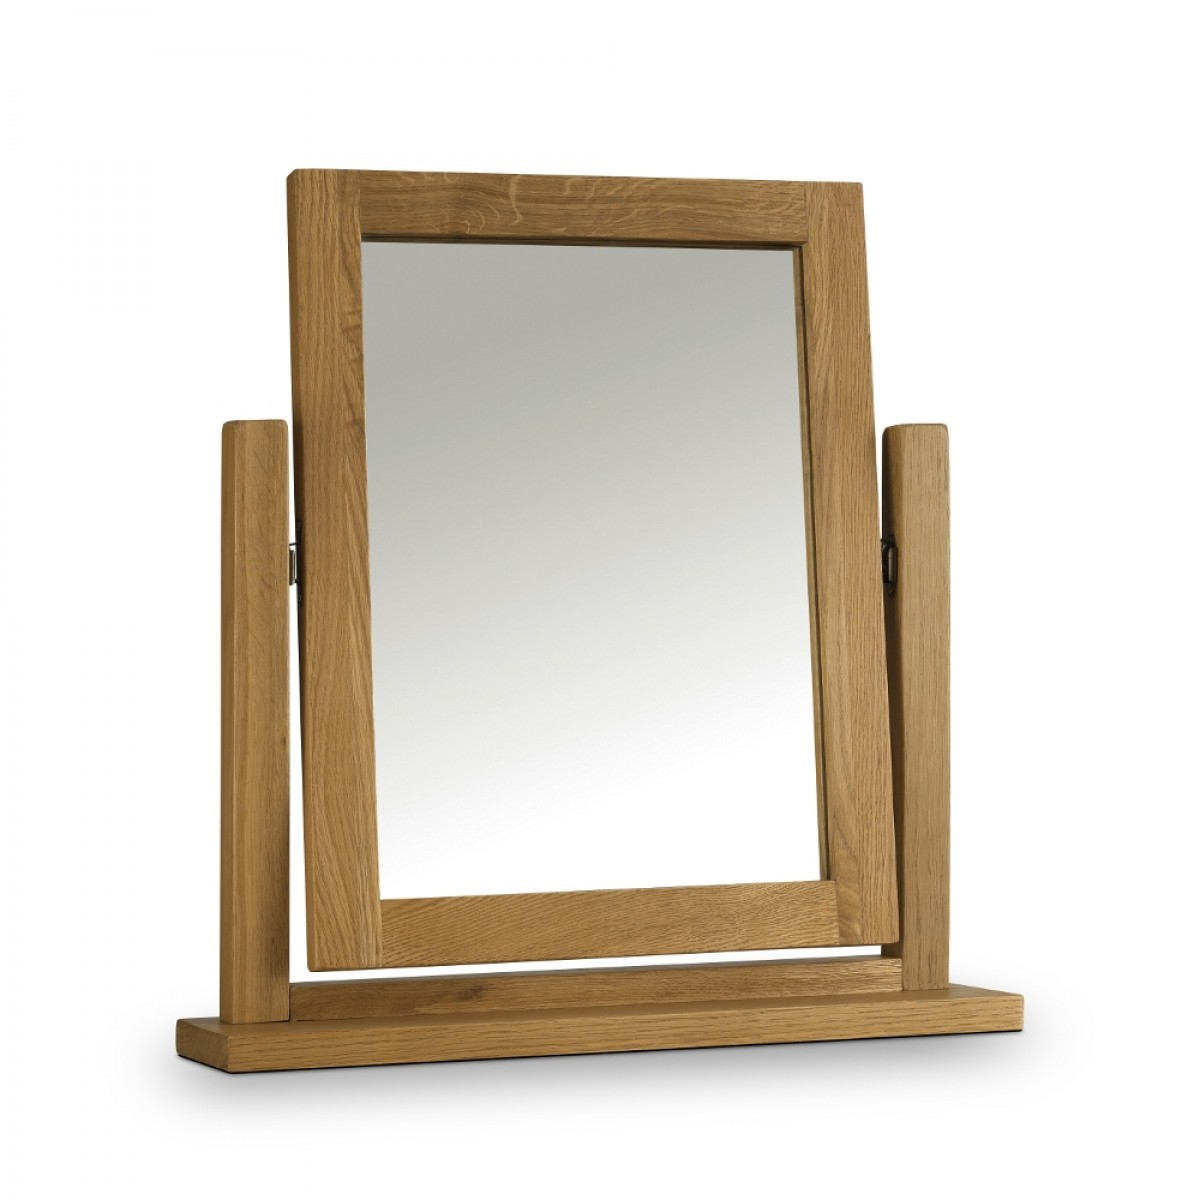 Marlborough Oak Dressing Table Mirror - 50 x 53 cm